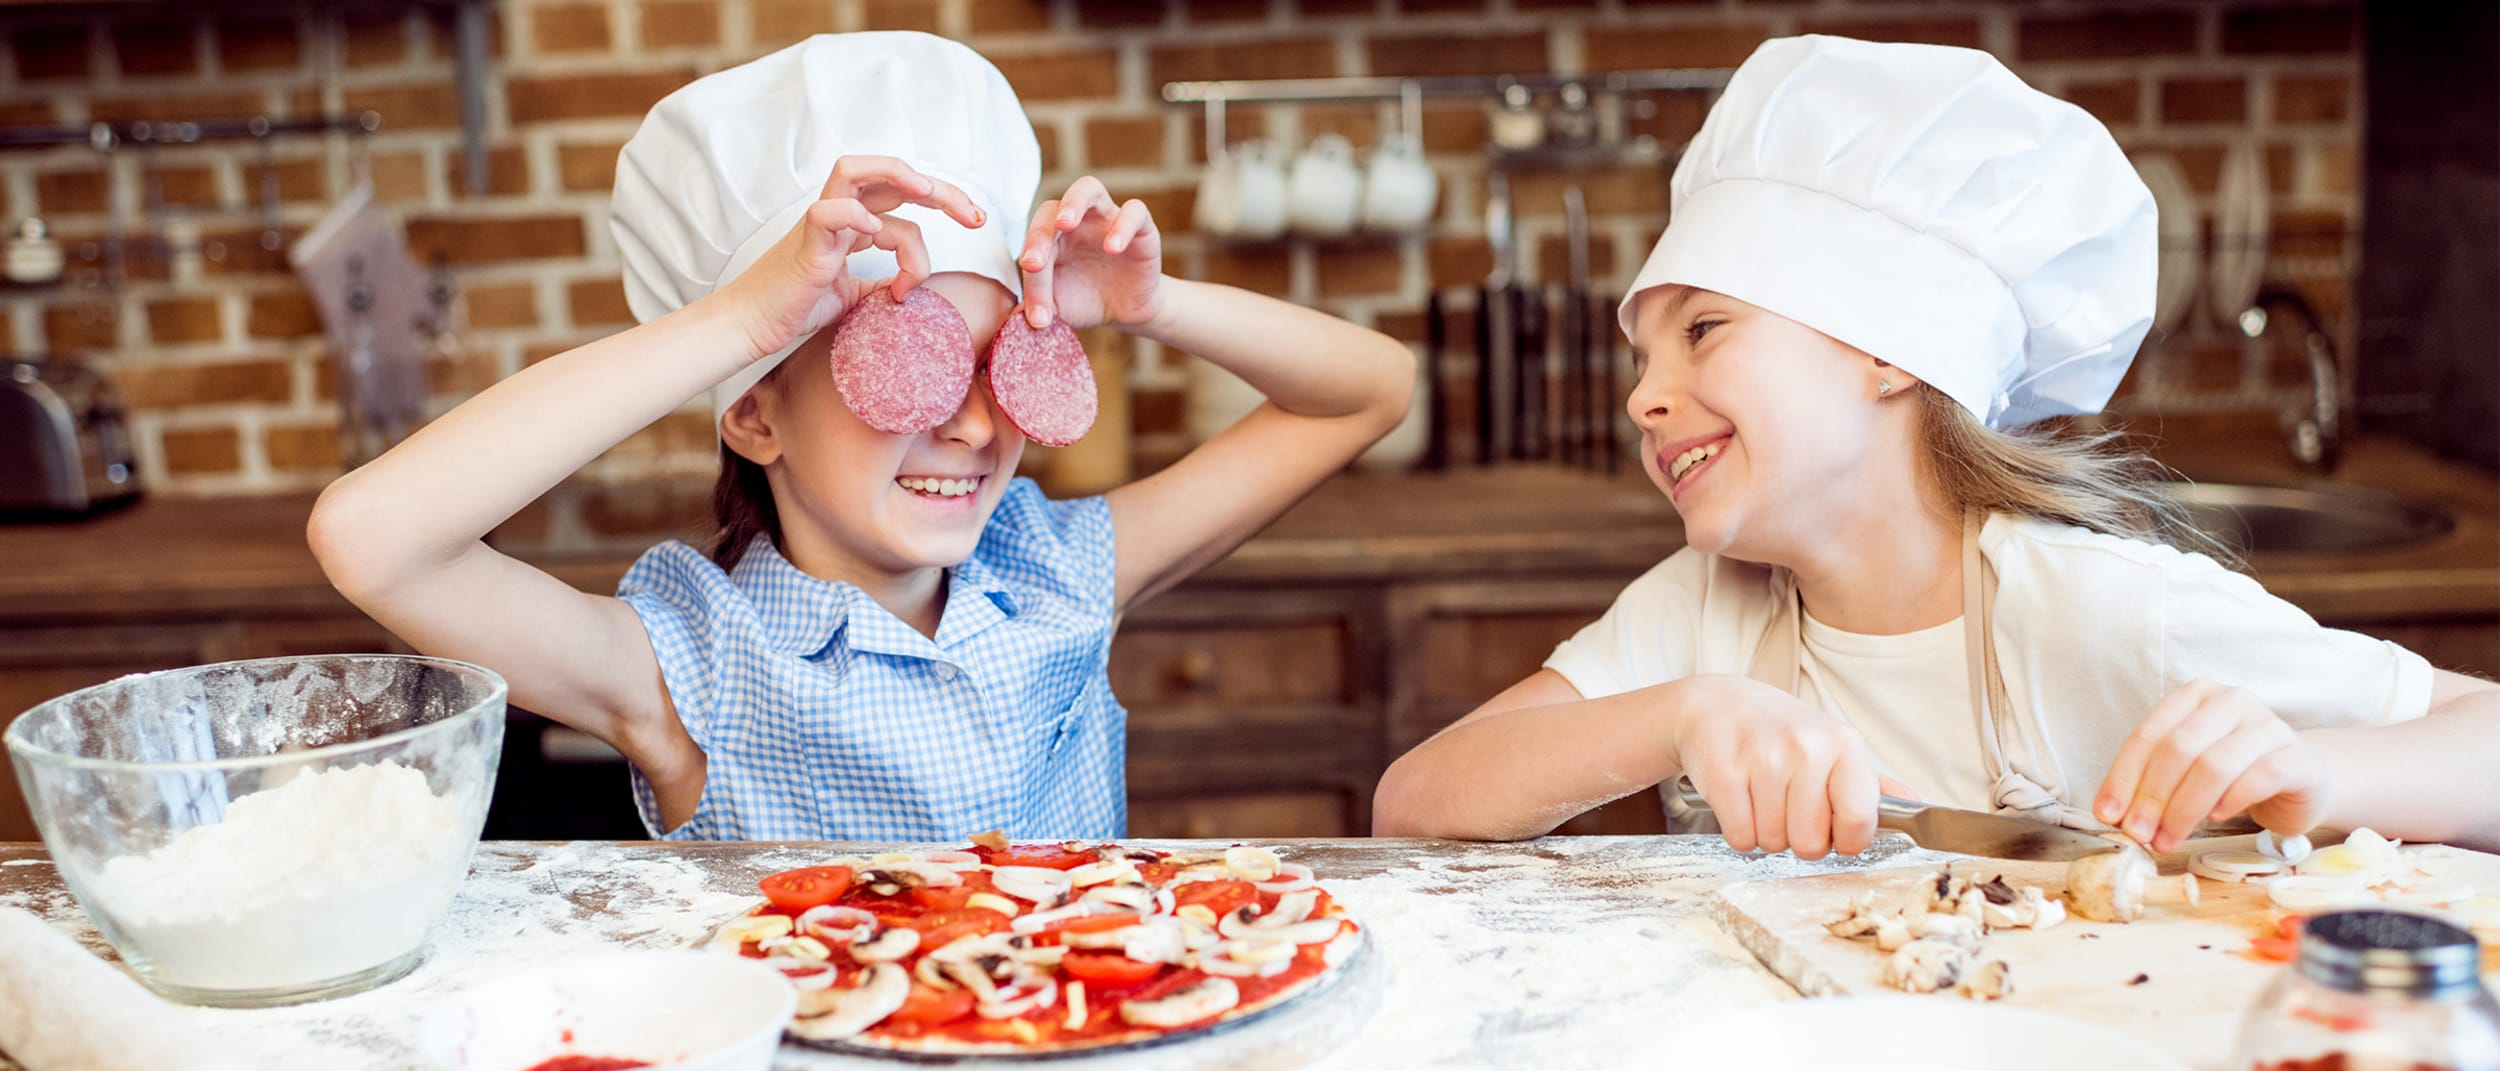 Kids in the Kitchen: DIY mini pizzas the whole family can enjoy